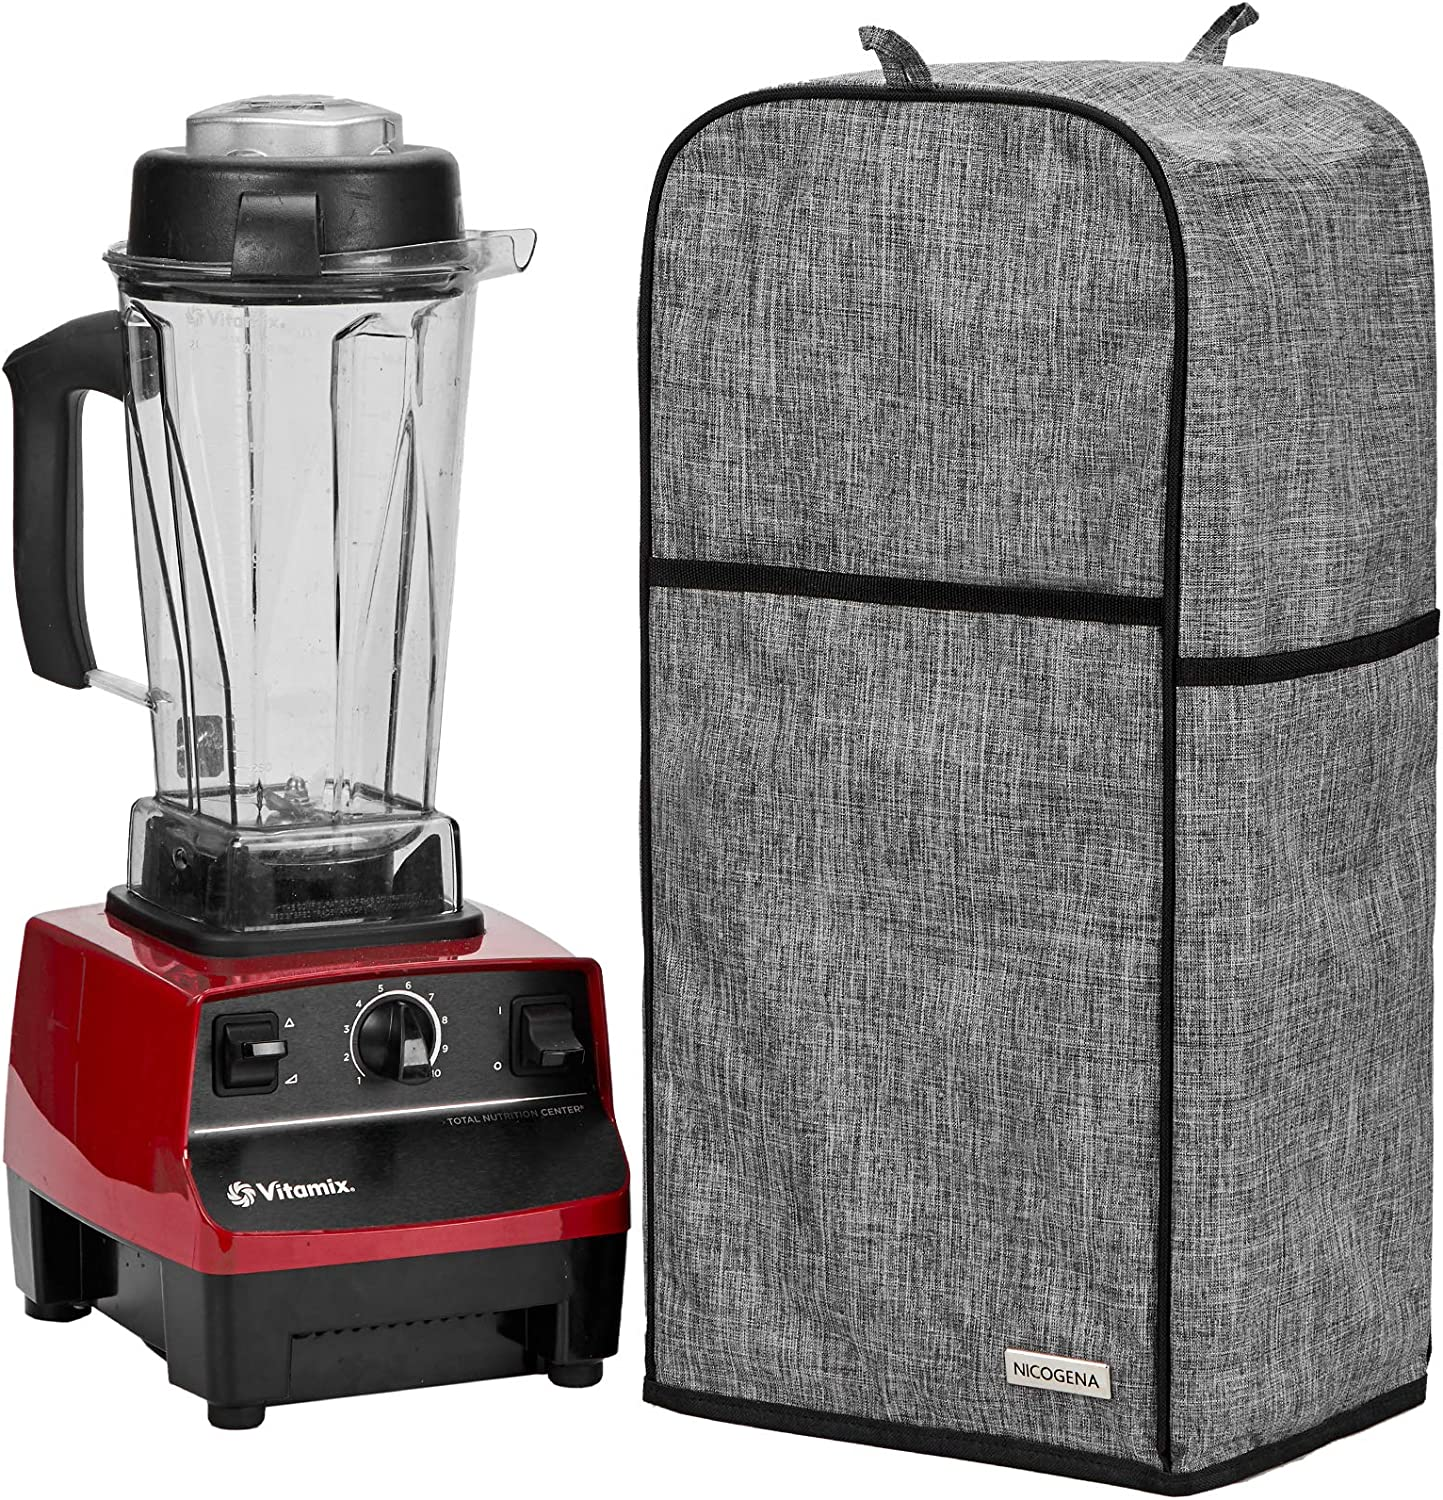 NICOGENA Blender Dust Cover with Accessory Pocket Compatible with Vitamix Classic C-series 5200, Turboblend, Large, Grey